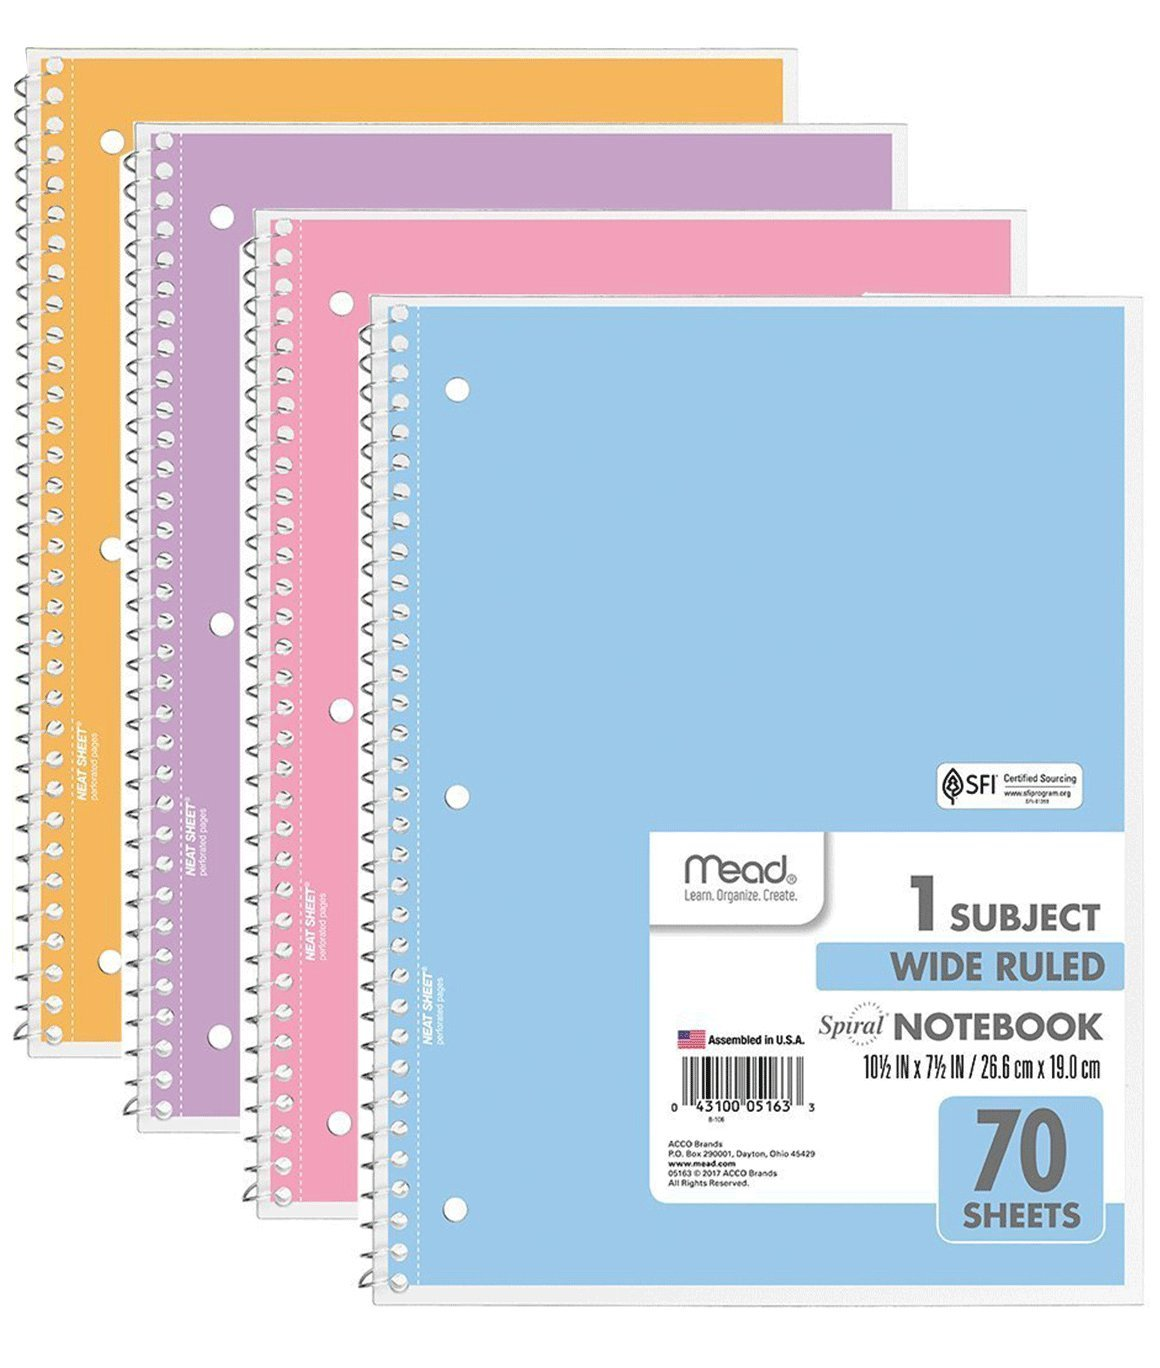 Mead Spiral Notebook, 70 Sheet Wide Ruled Notebooks, 1-Subject Notebook, Pastel Color, COLOR WILL VARY (Pack of 4)